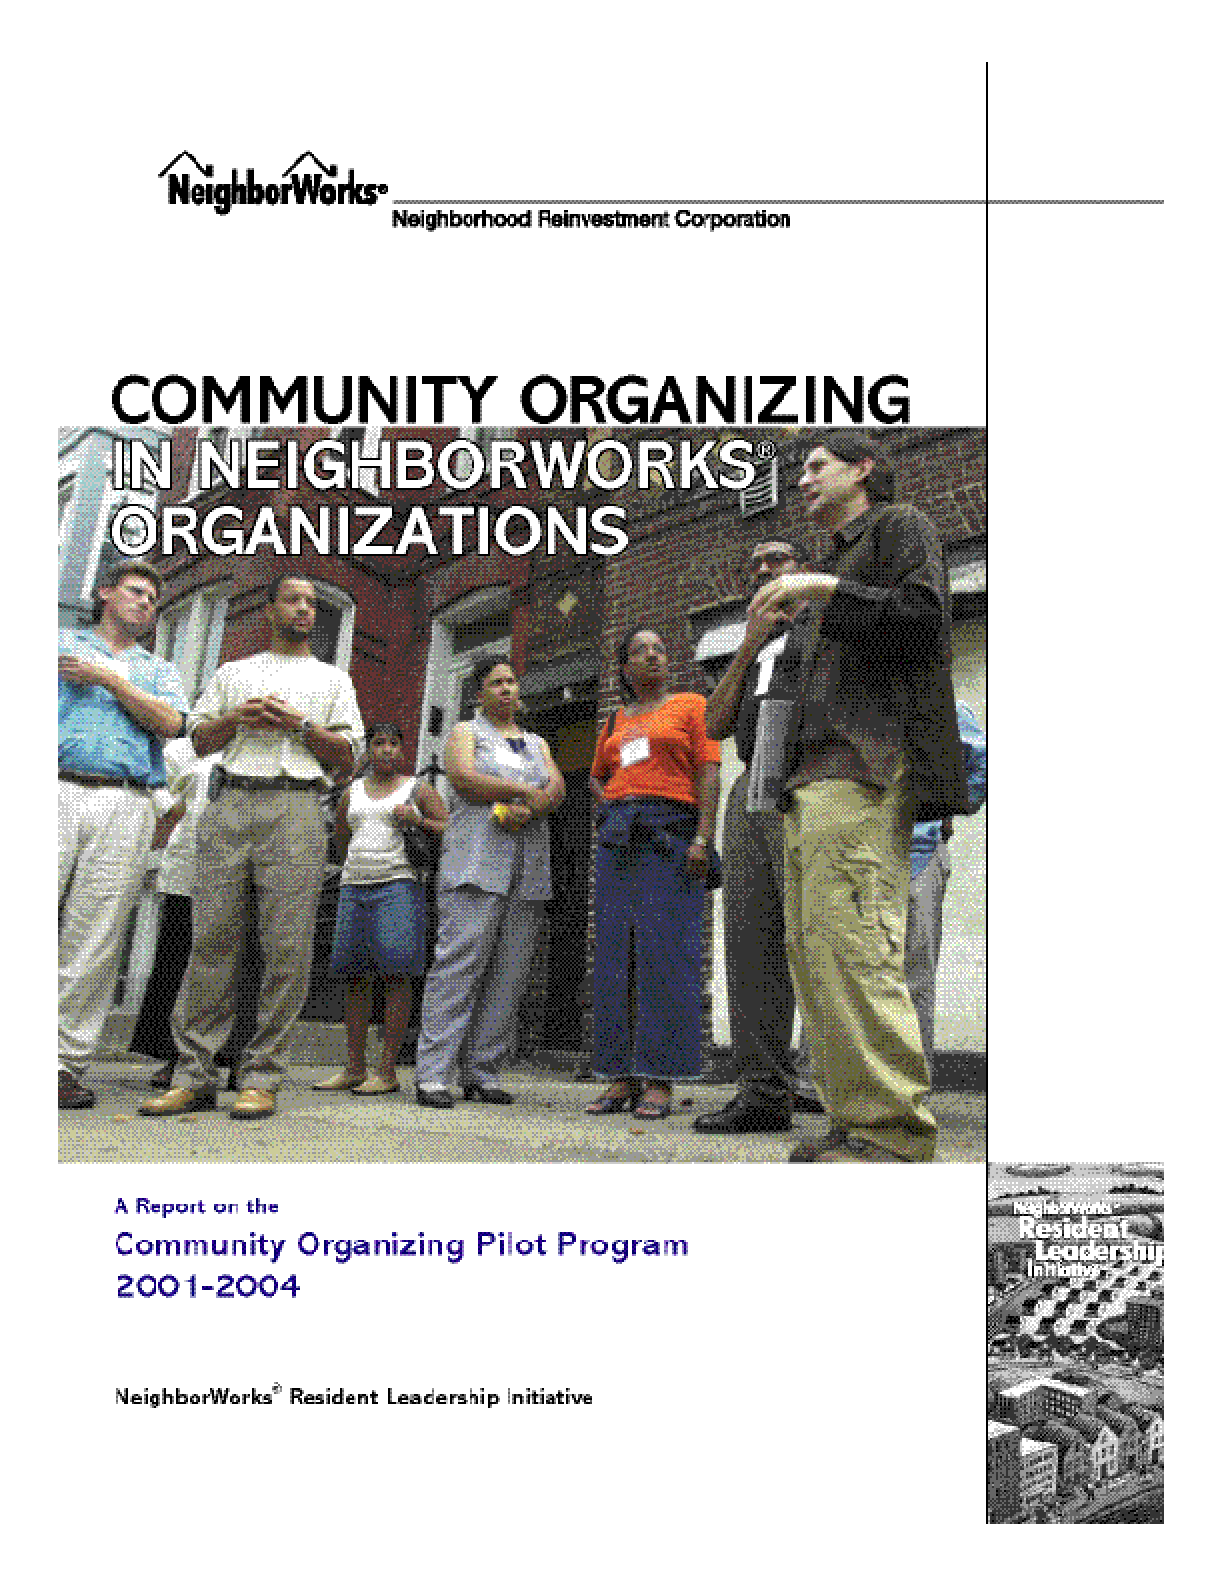 Community Organizing in NeighborWorks Organizations